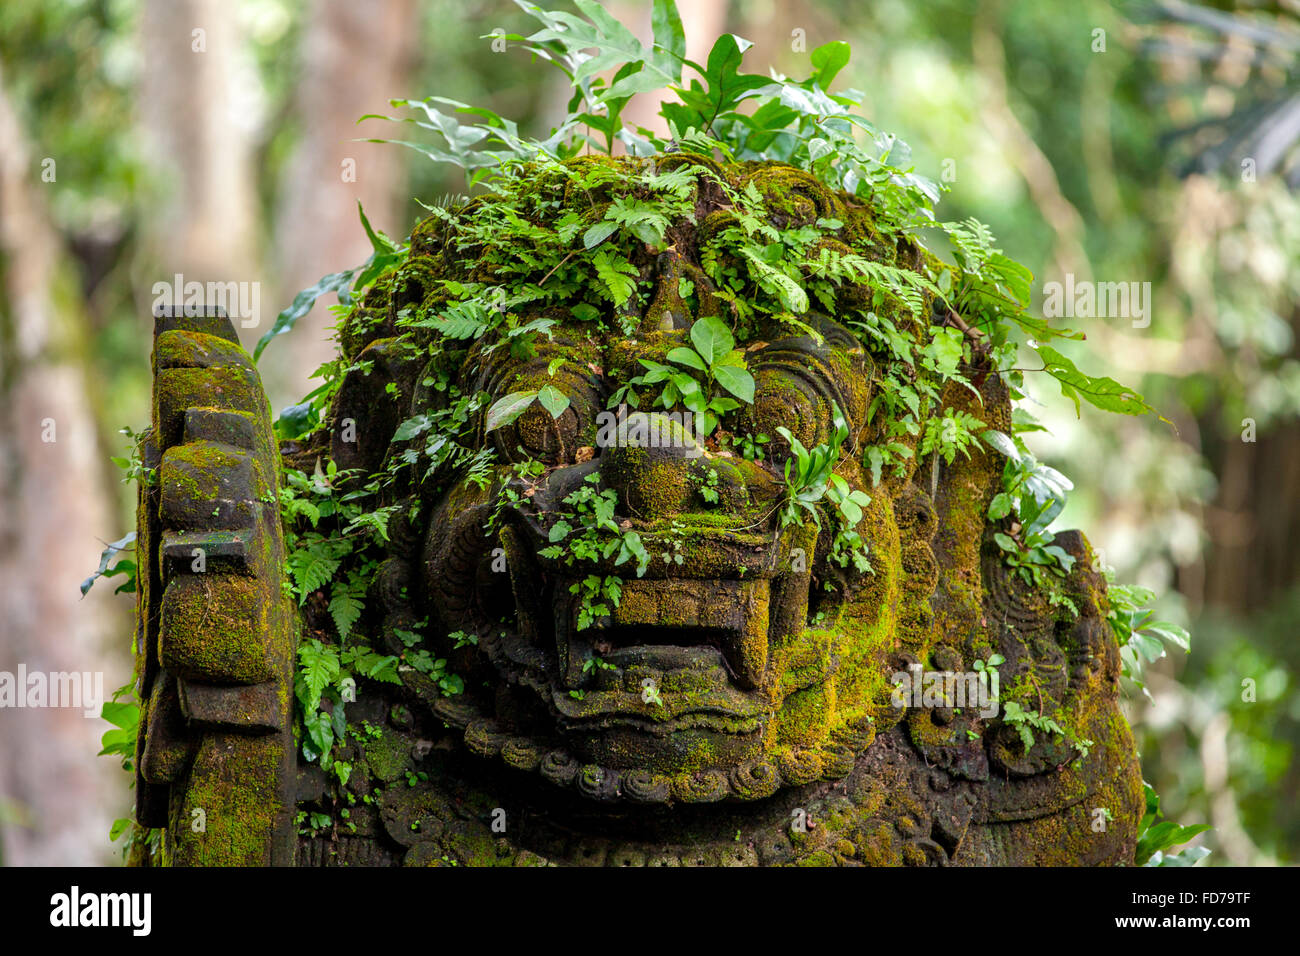 Demon head, at the entrance to Monkey Forest temple, Pura Dalem Agung Padangtegal temple in Ubud Monkey Forest, - Stock Image